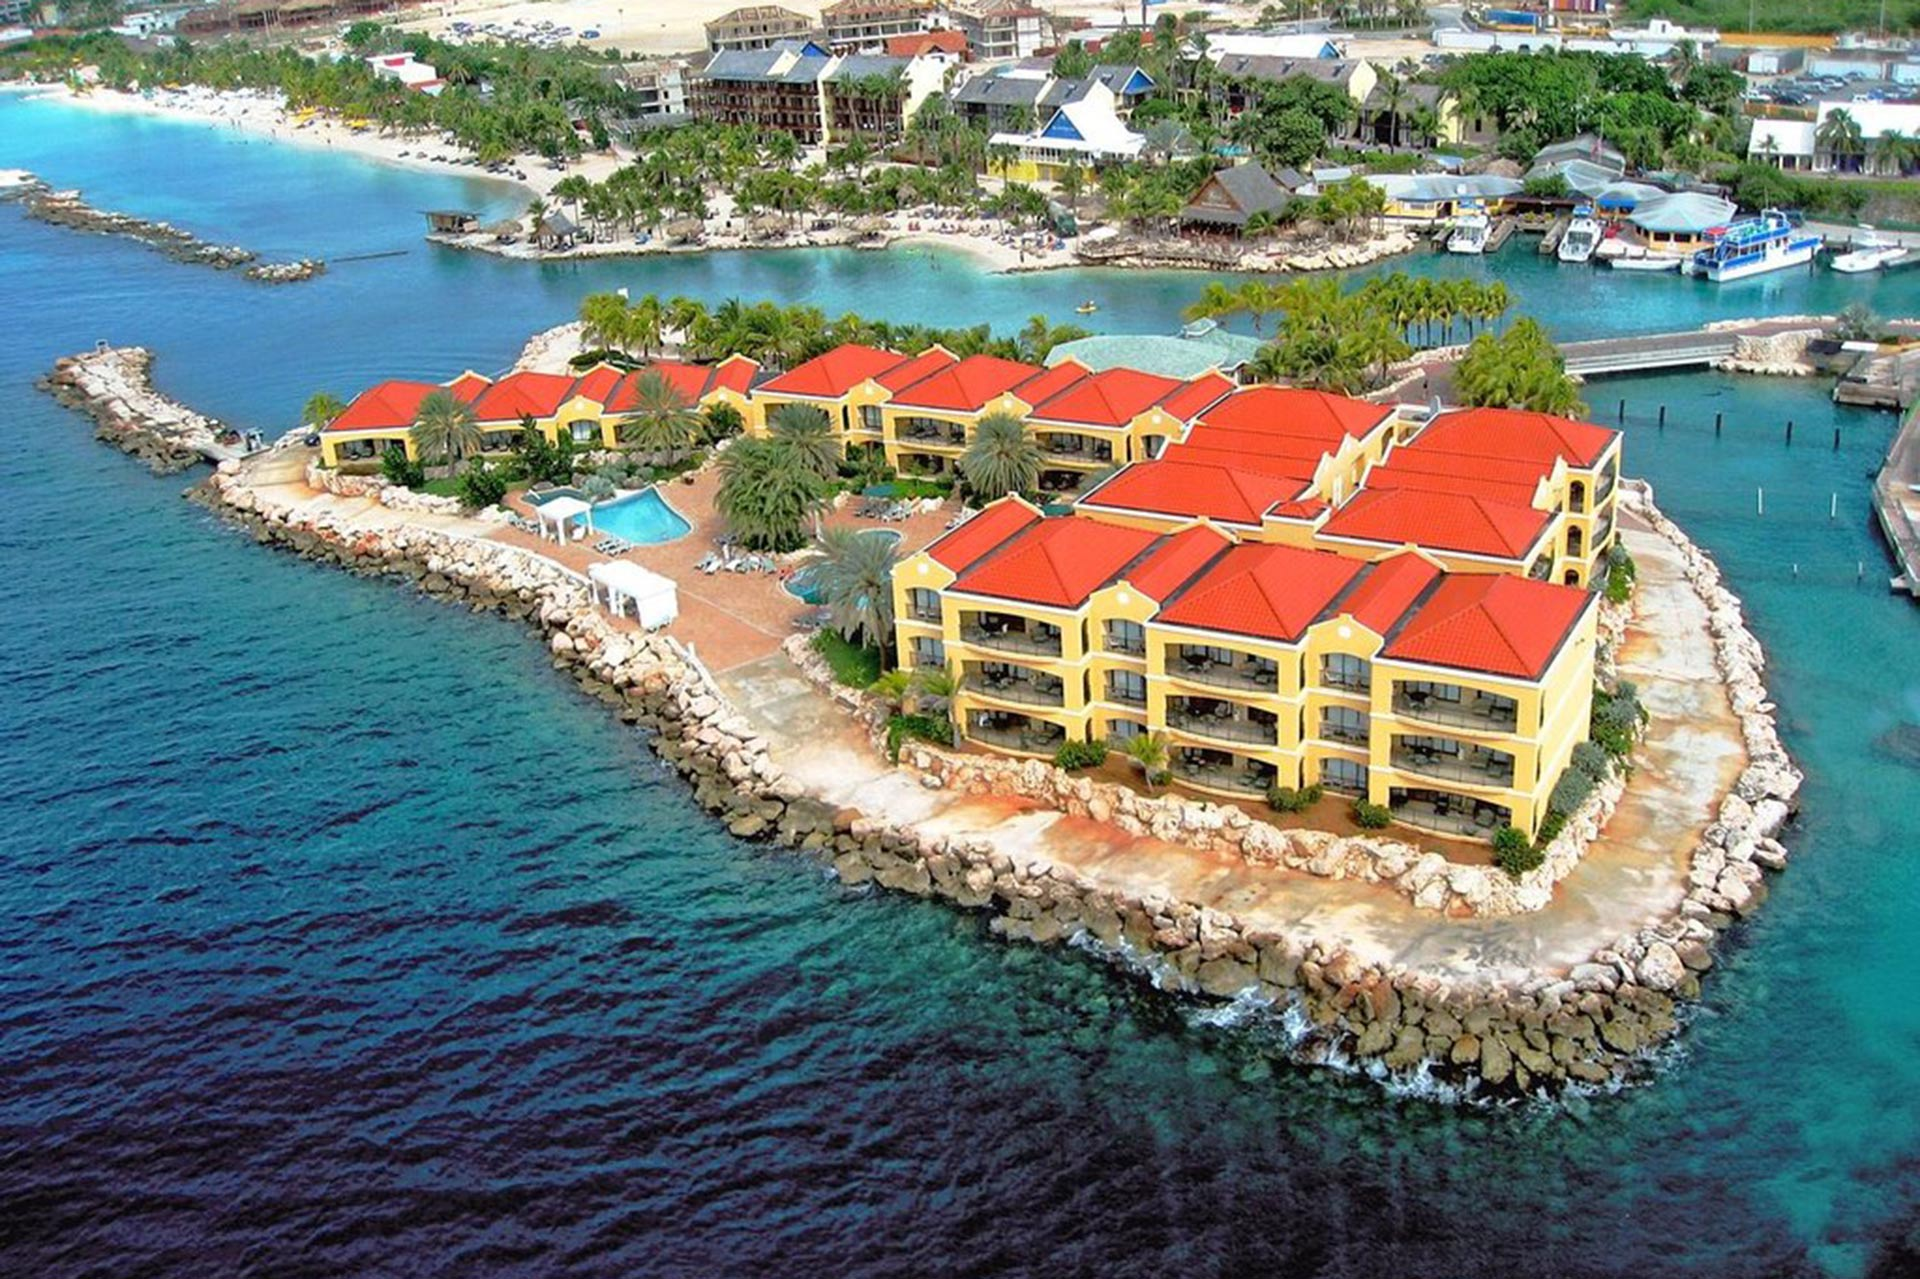 Royal Sea Aquarium Resort in Curacao